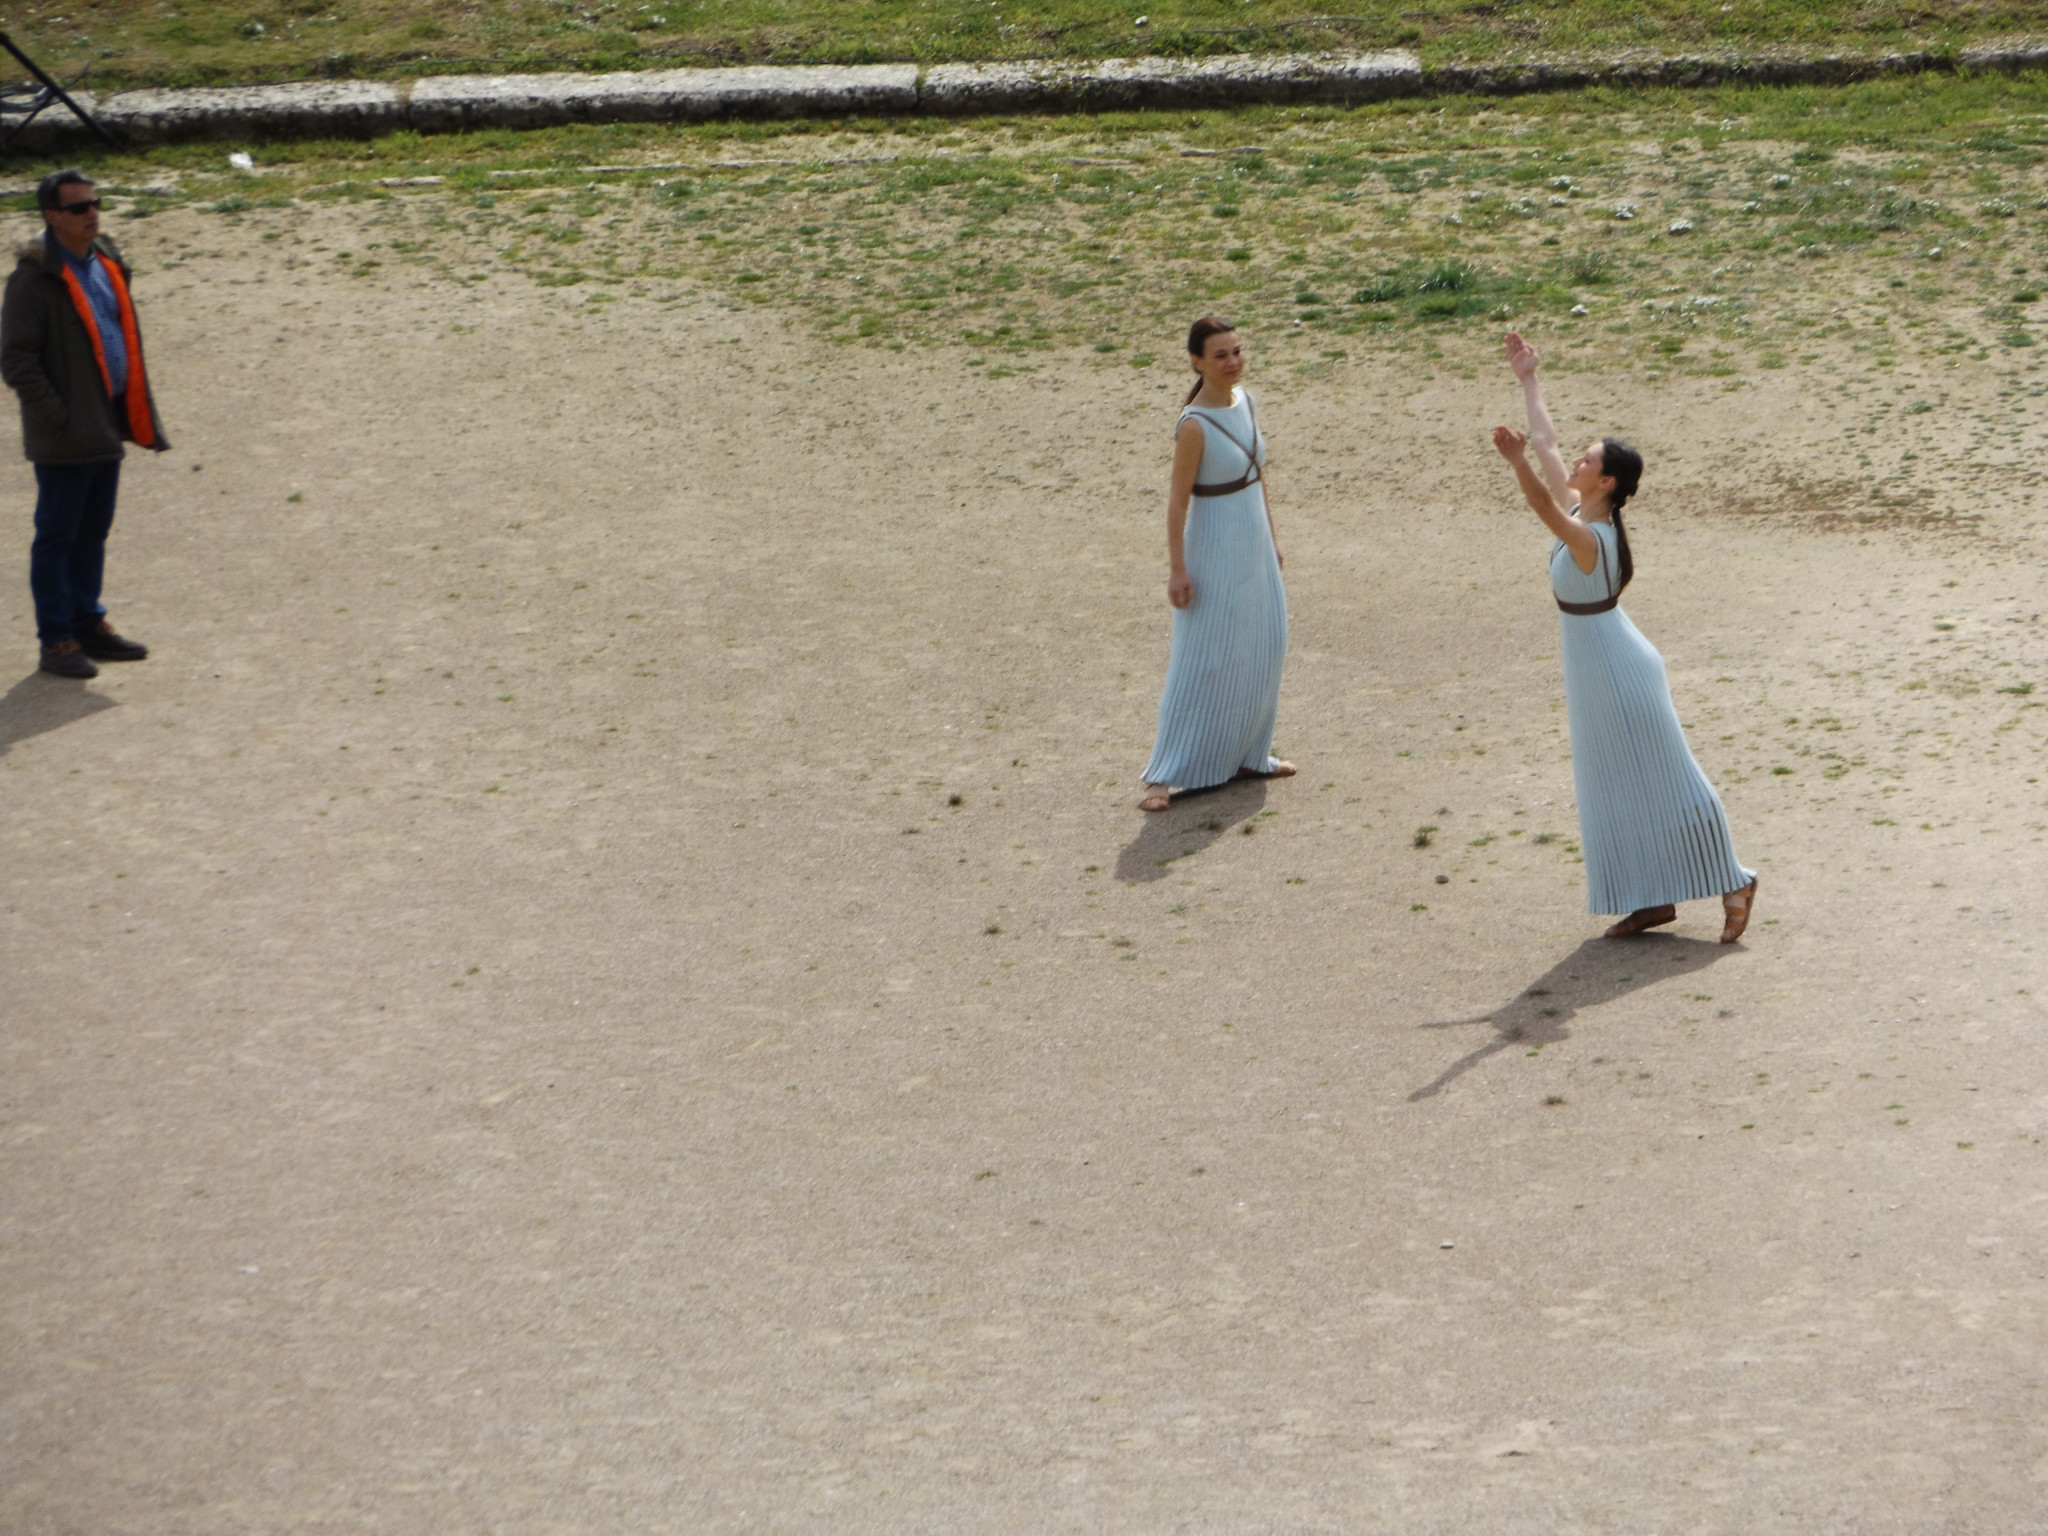 The releasing of the dove is mimed during the Olympic flame lighting Ceremony rehearsal ©ITG